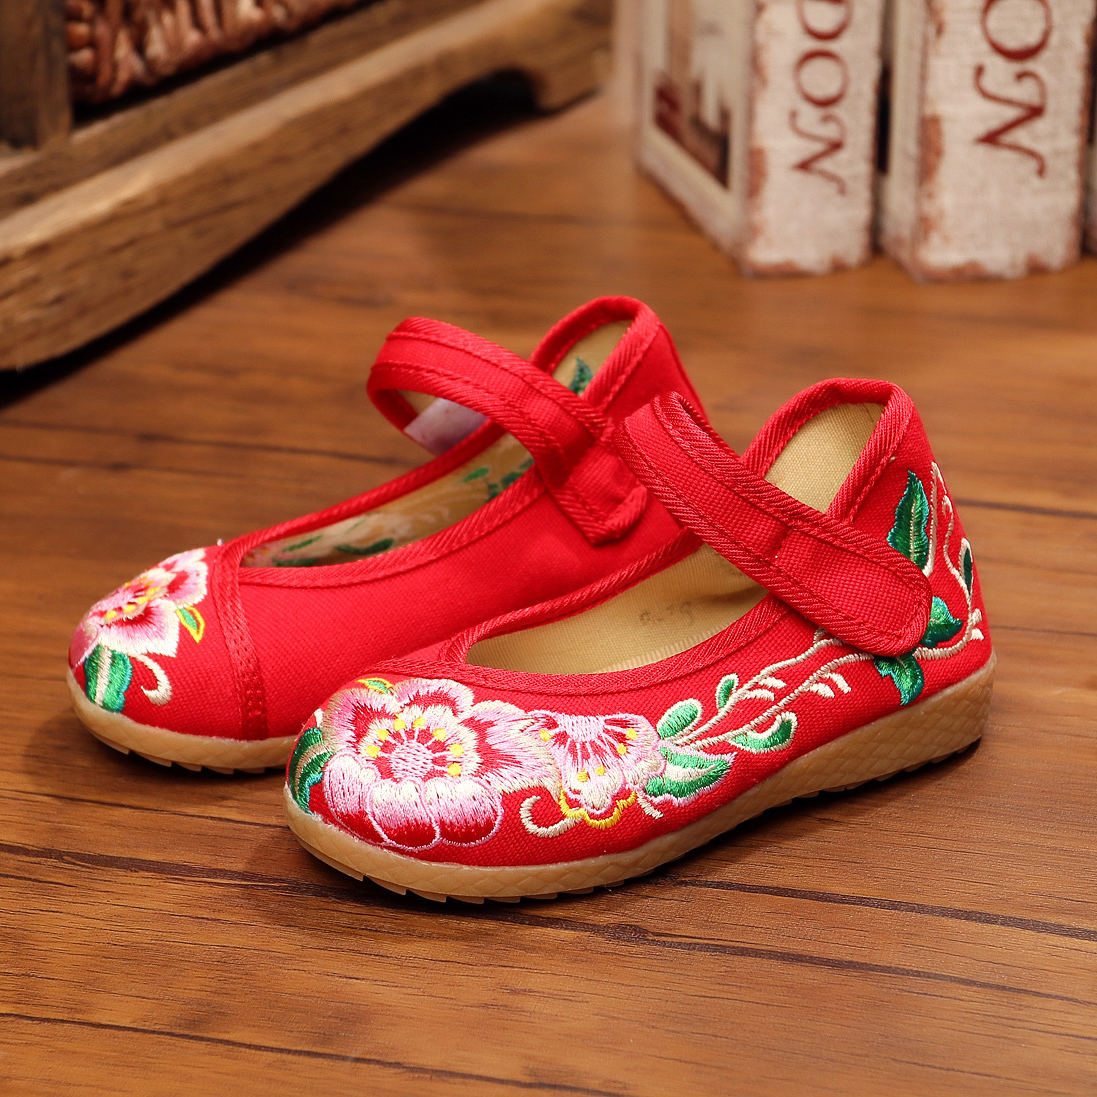 New chinese style fashion beautiful embroidery candy color child canvas flats shoes dance shoes for children foot length 15-21cm<br><br>Aliexpress